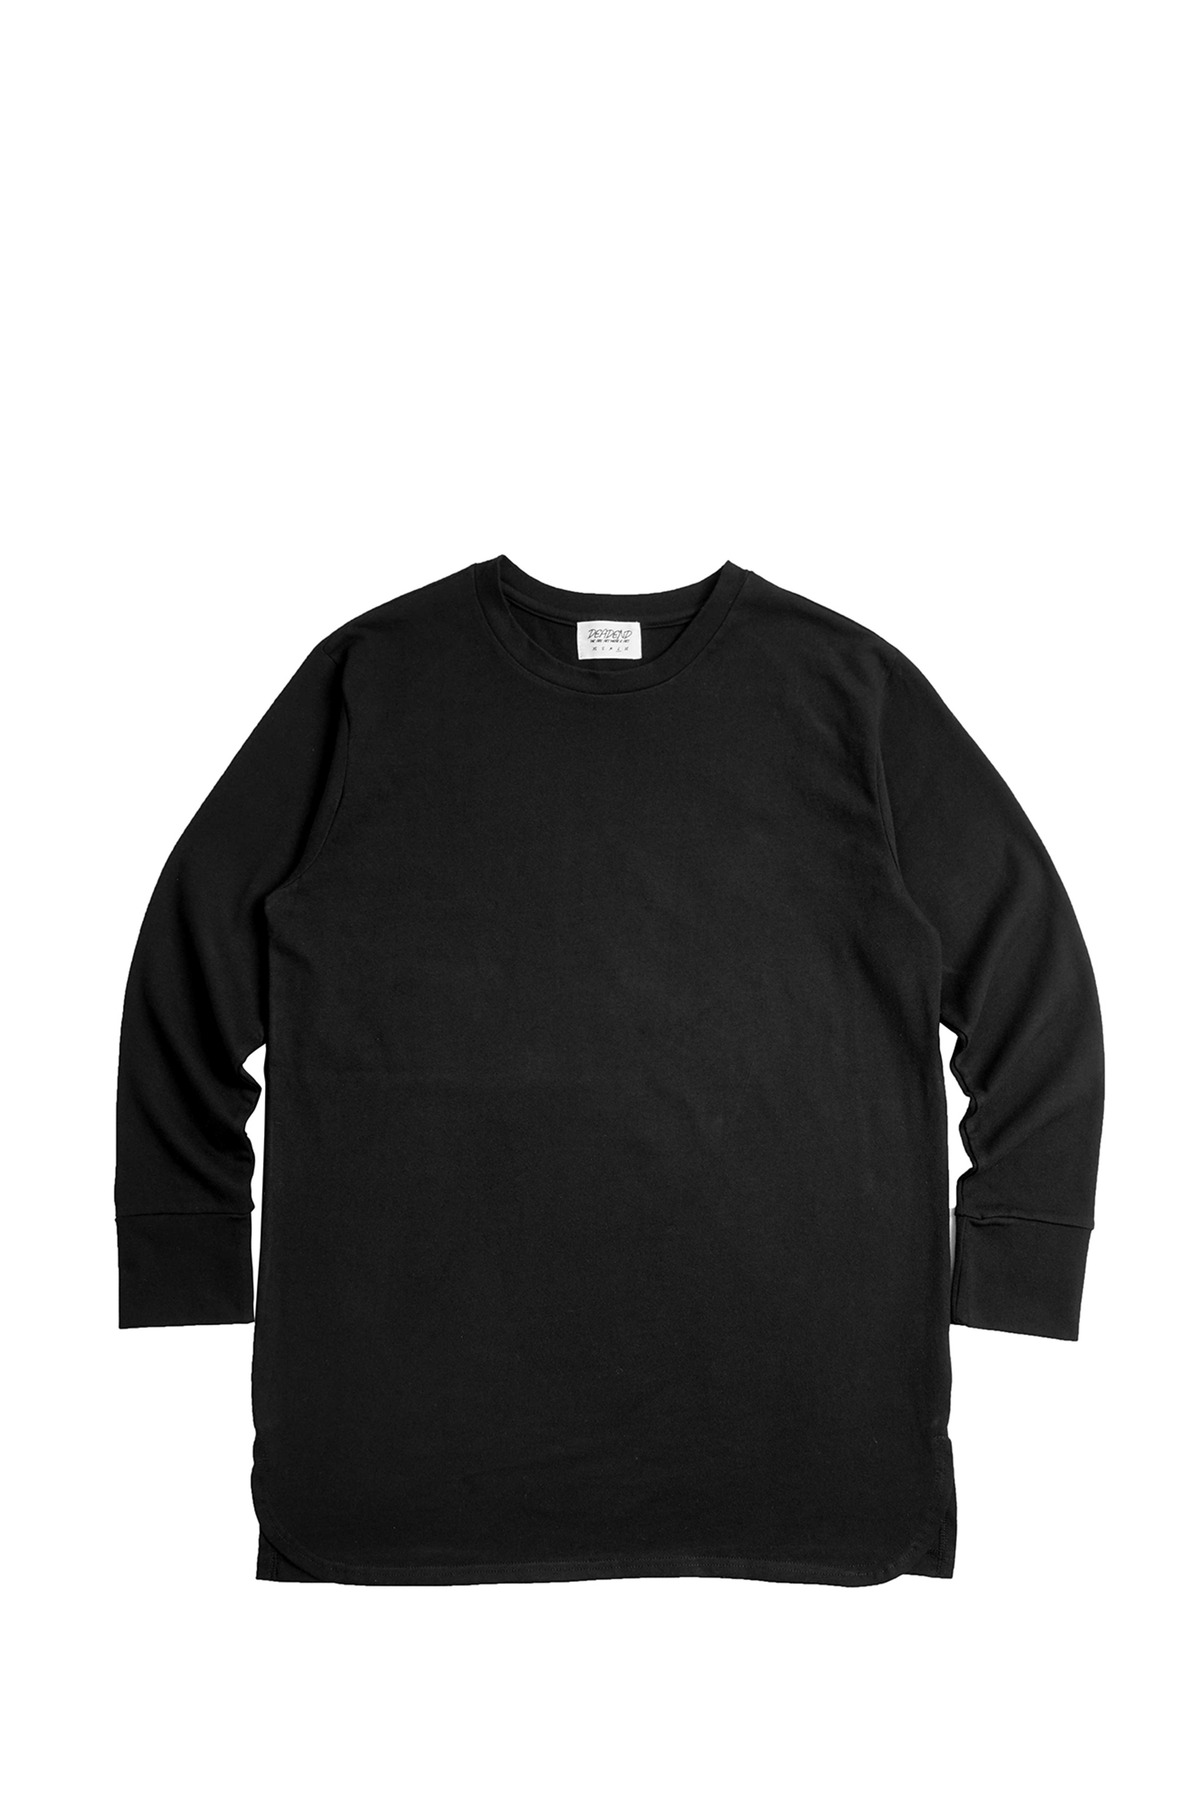 BLACK SET IN RAGLAN SLEEVE